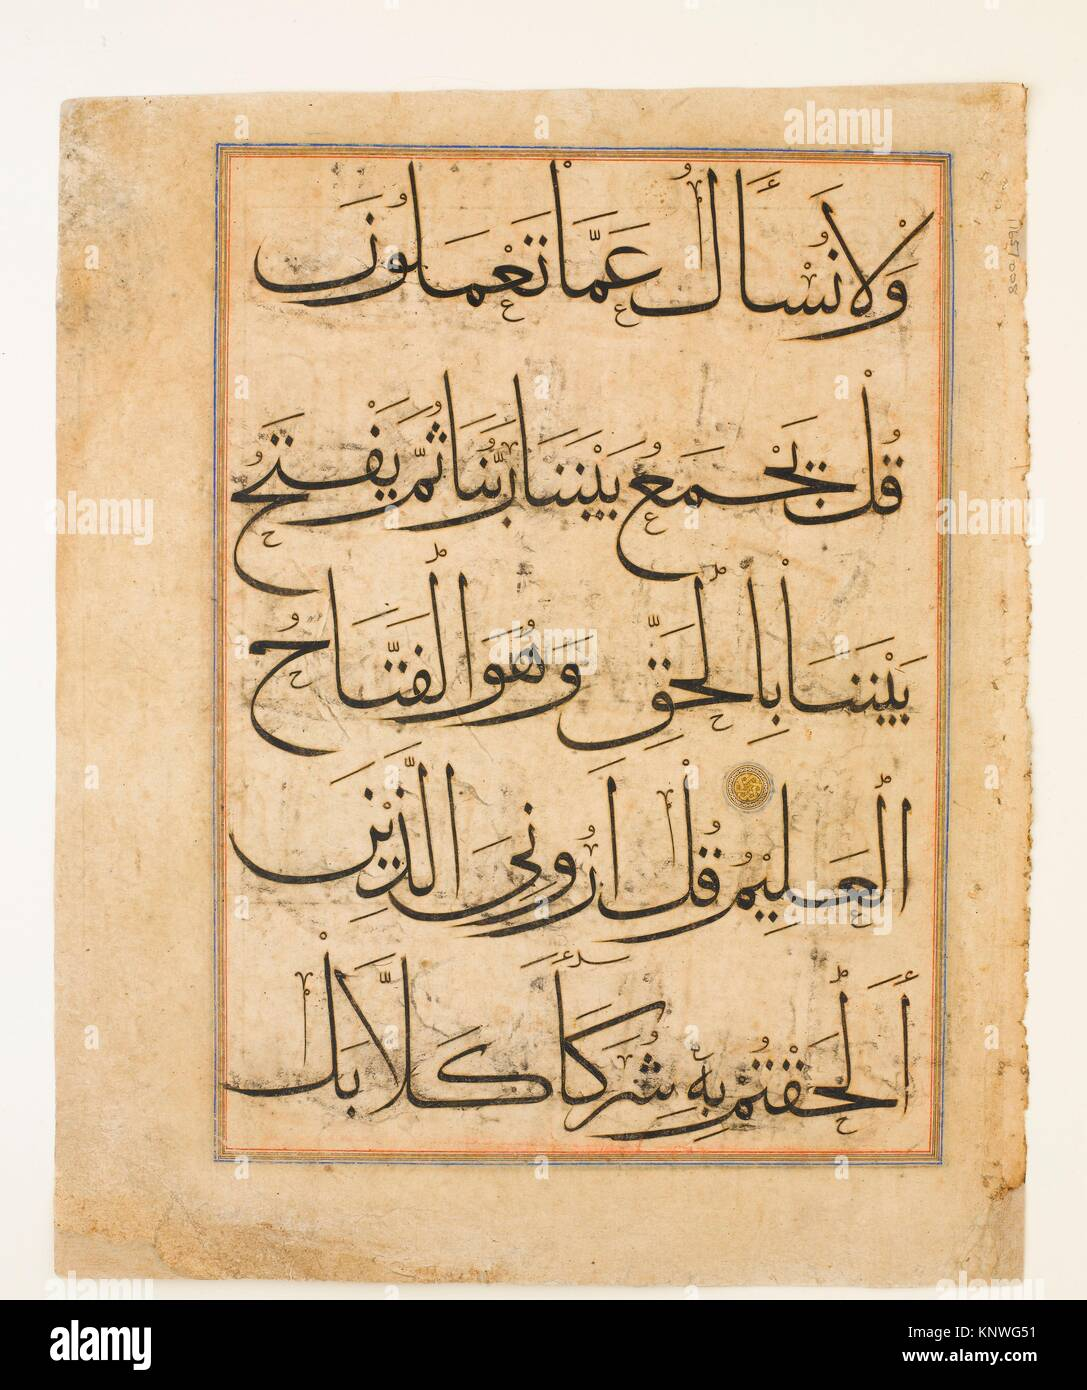 Calligrapher Abu Muhammad Abd Al Qayyum Ibn Karamshah Tabrizi Object Name Folio From A Non Illustrated